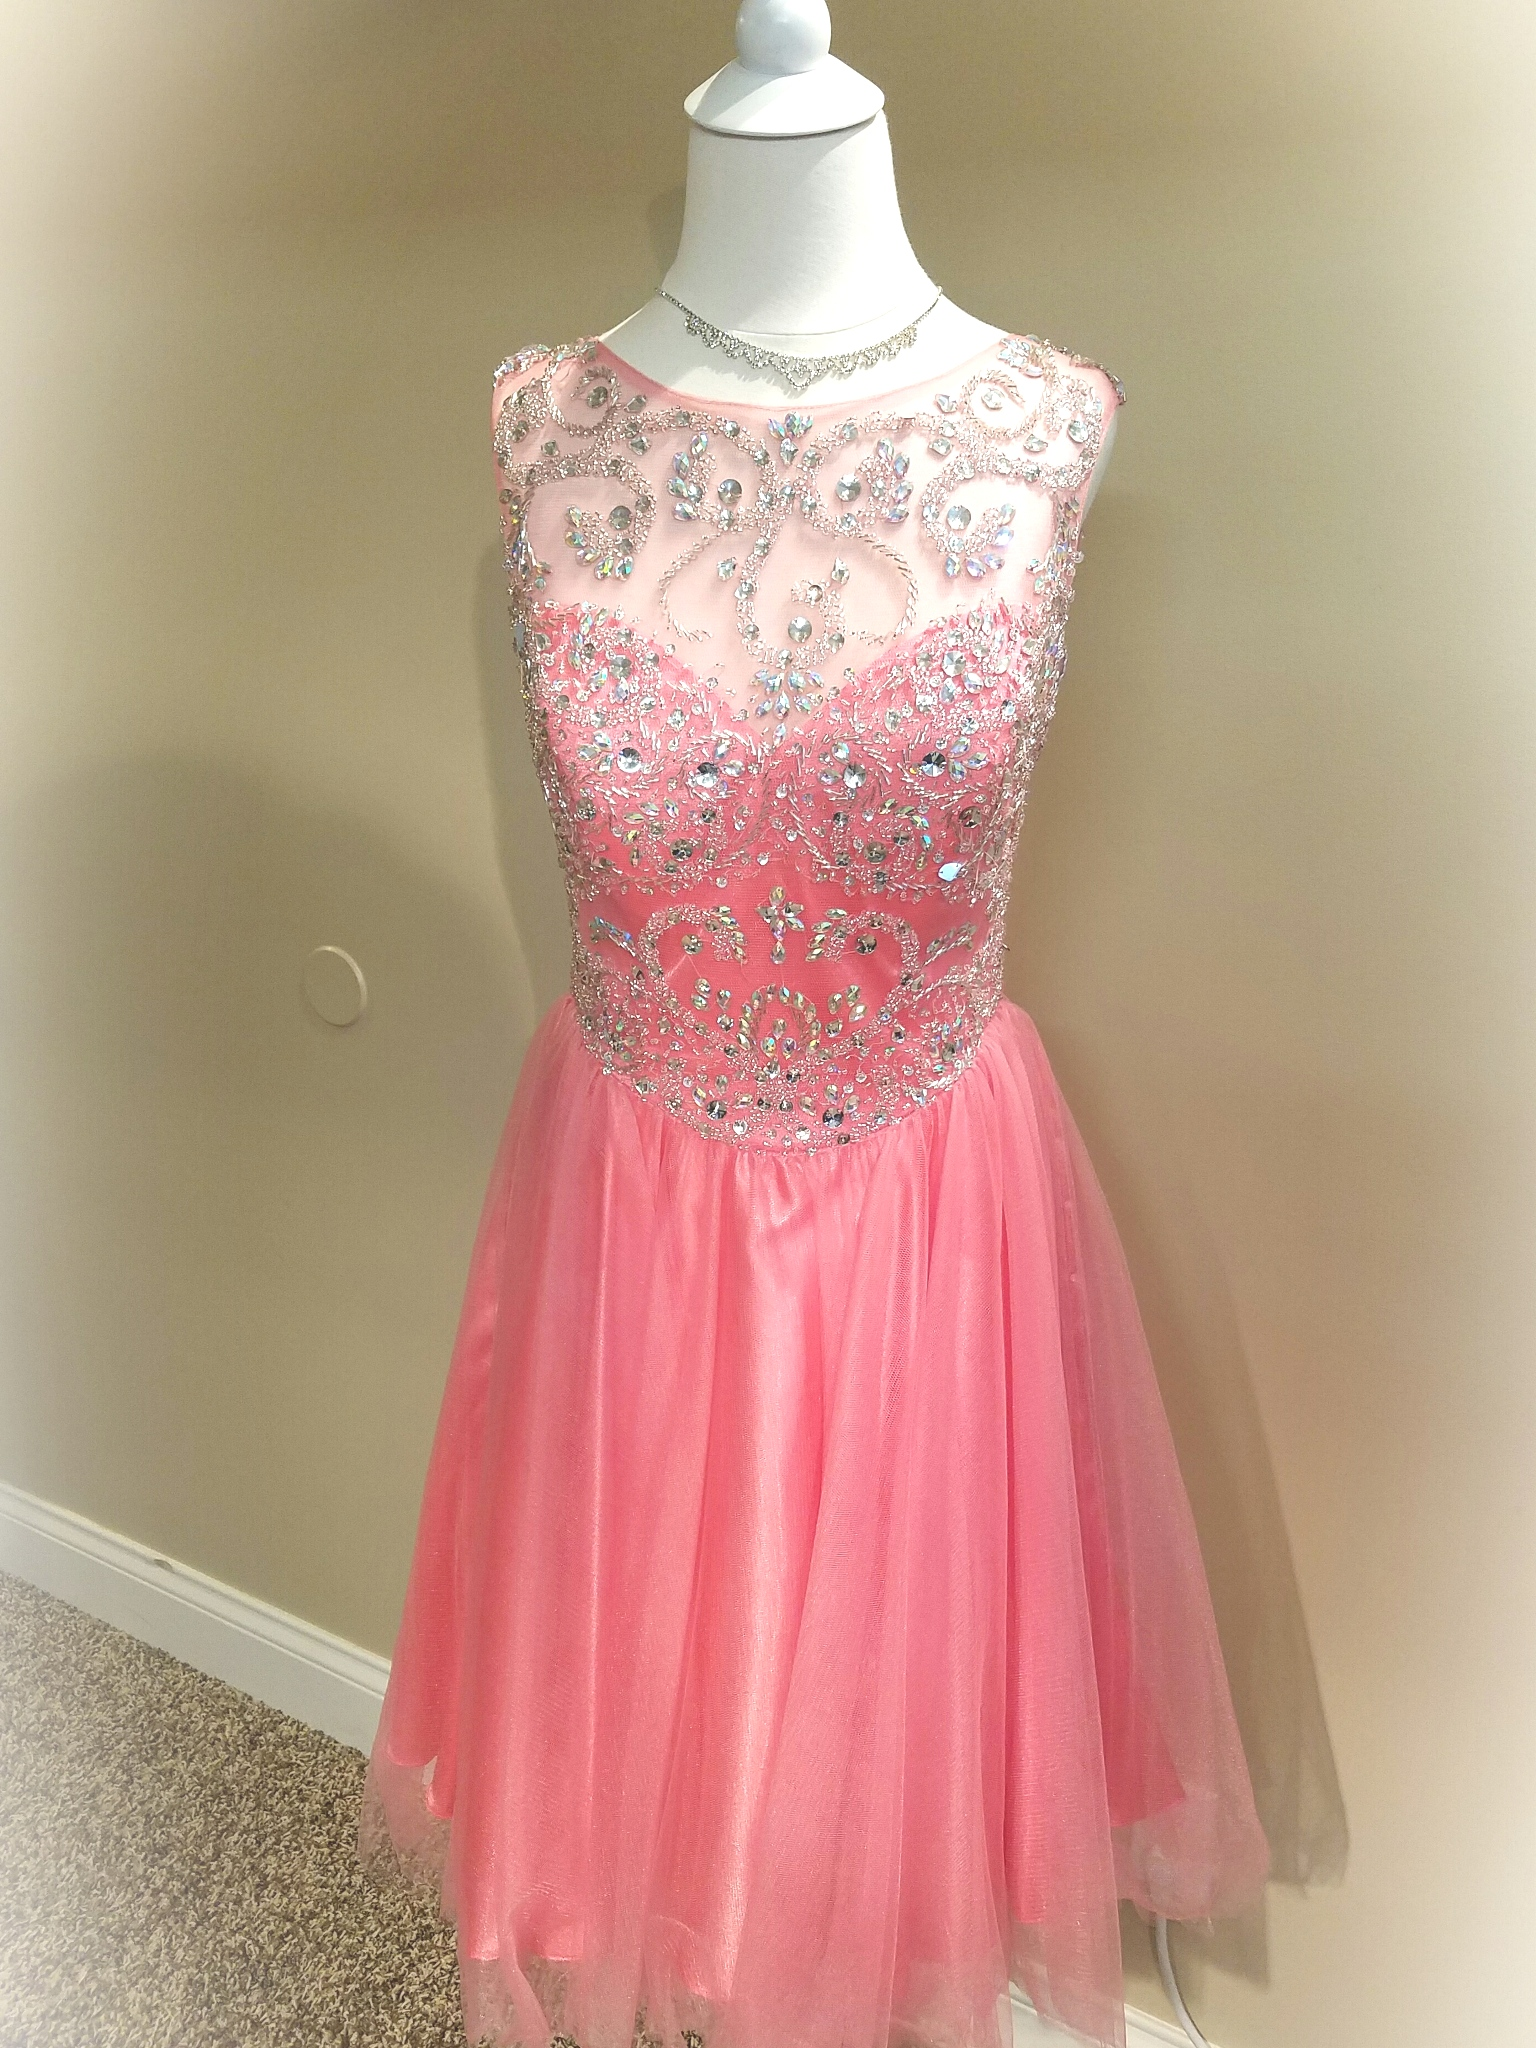 06-0251   Size 6